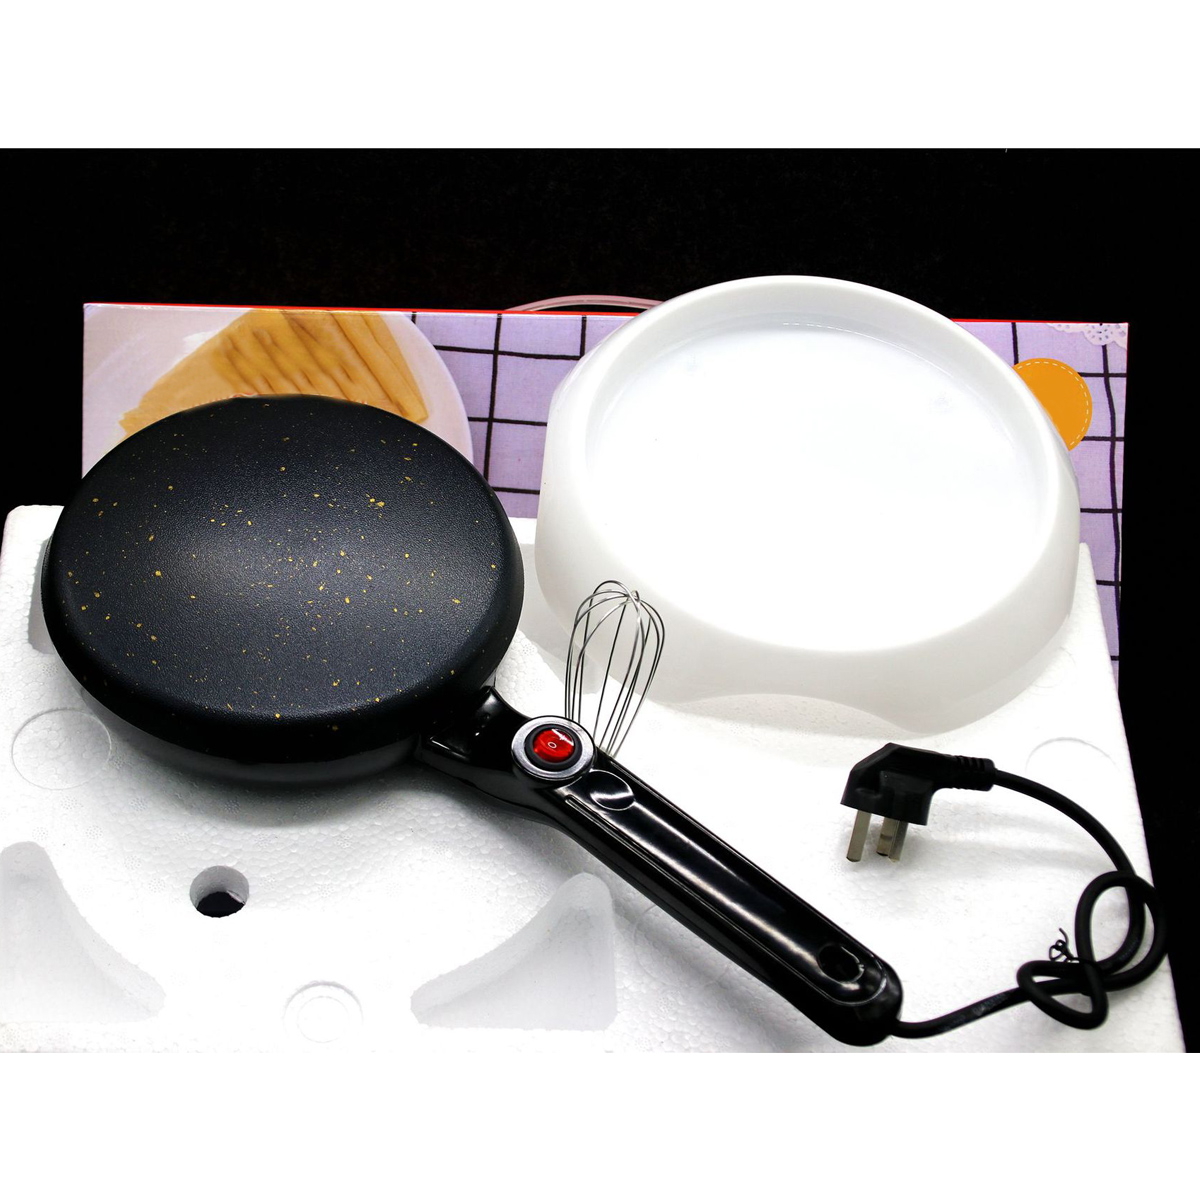 600W Kitchen Electric Griddle Pancake Baking Crepe Maker Pan Pizza Cake Non-Stick Machine Home DIY Cooking Tools With EggBeater